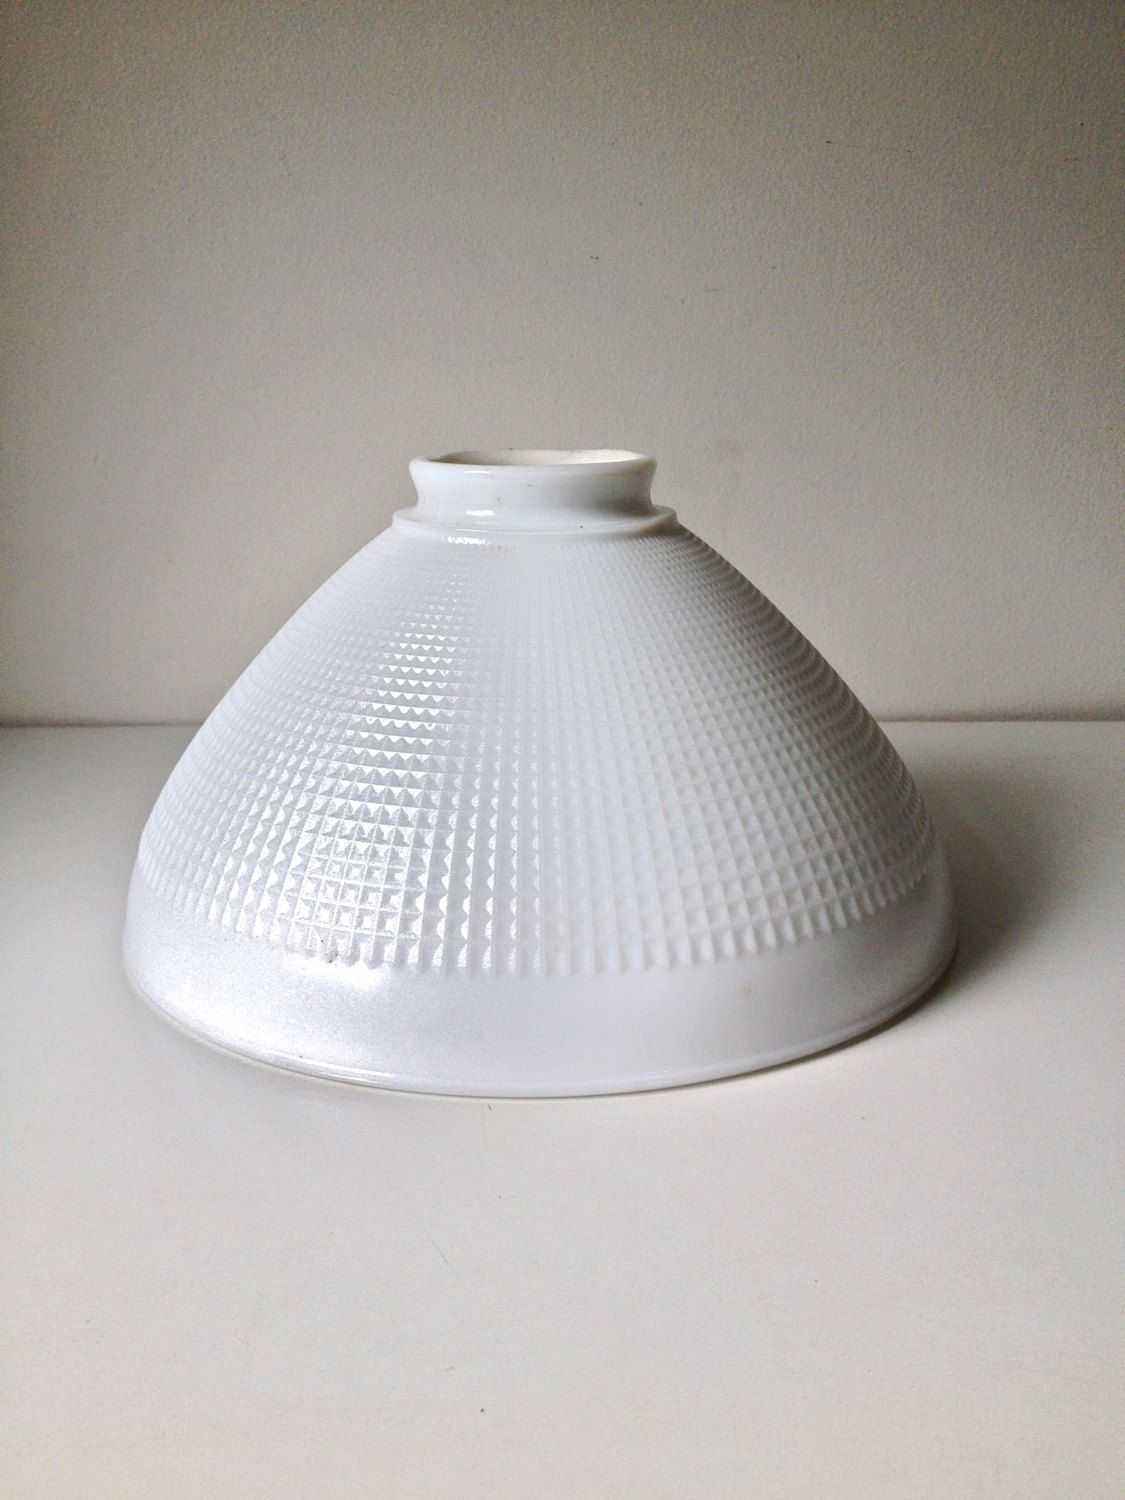 Corning torchiere glass lamp shade large 10 diffuser shade by corning torchiere glass lamp shade large 10 diffuser shade by sarahloveslamps on etsy aloadofball Image collections